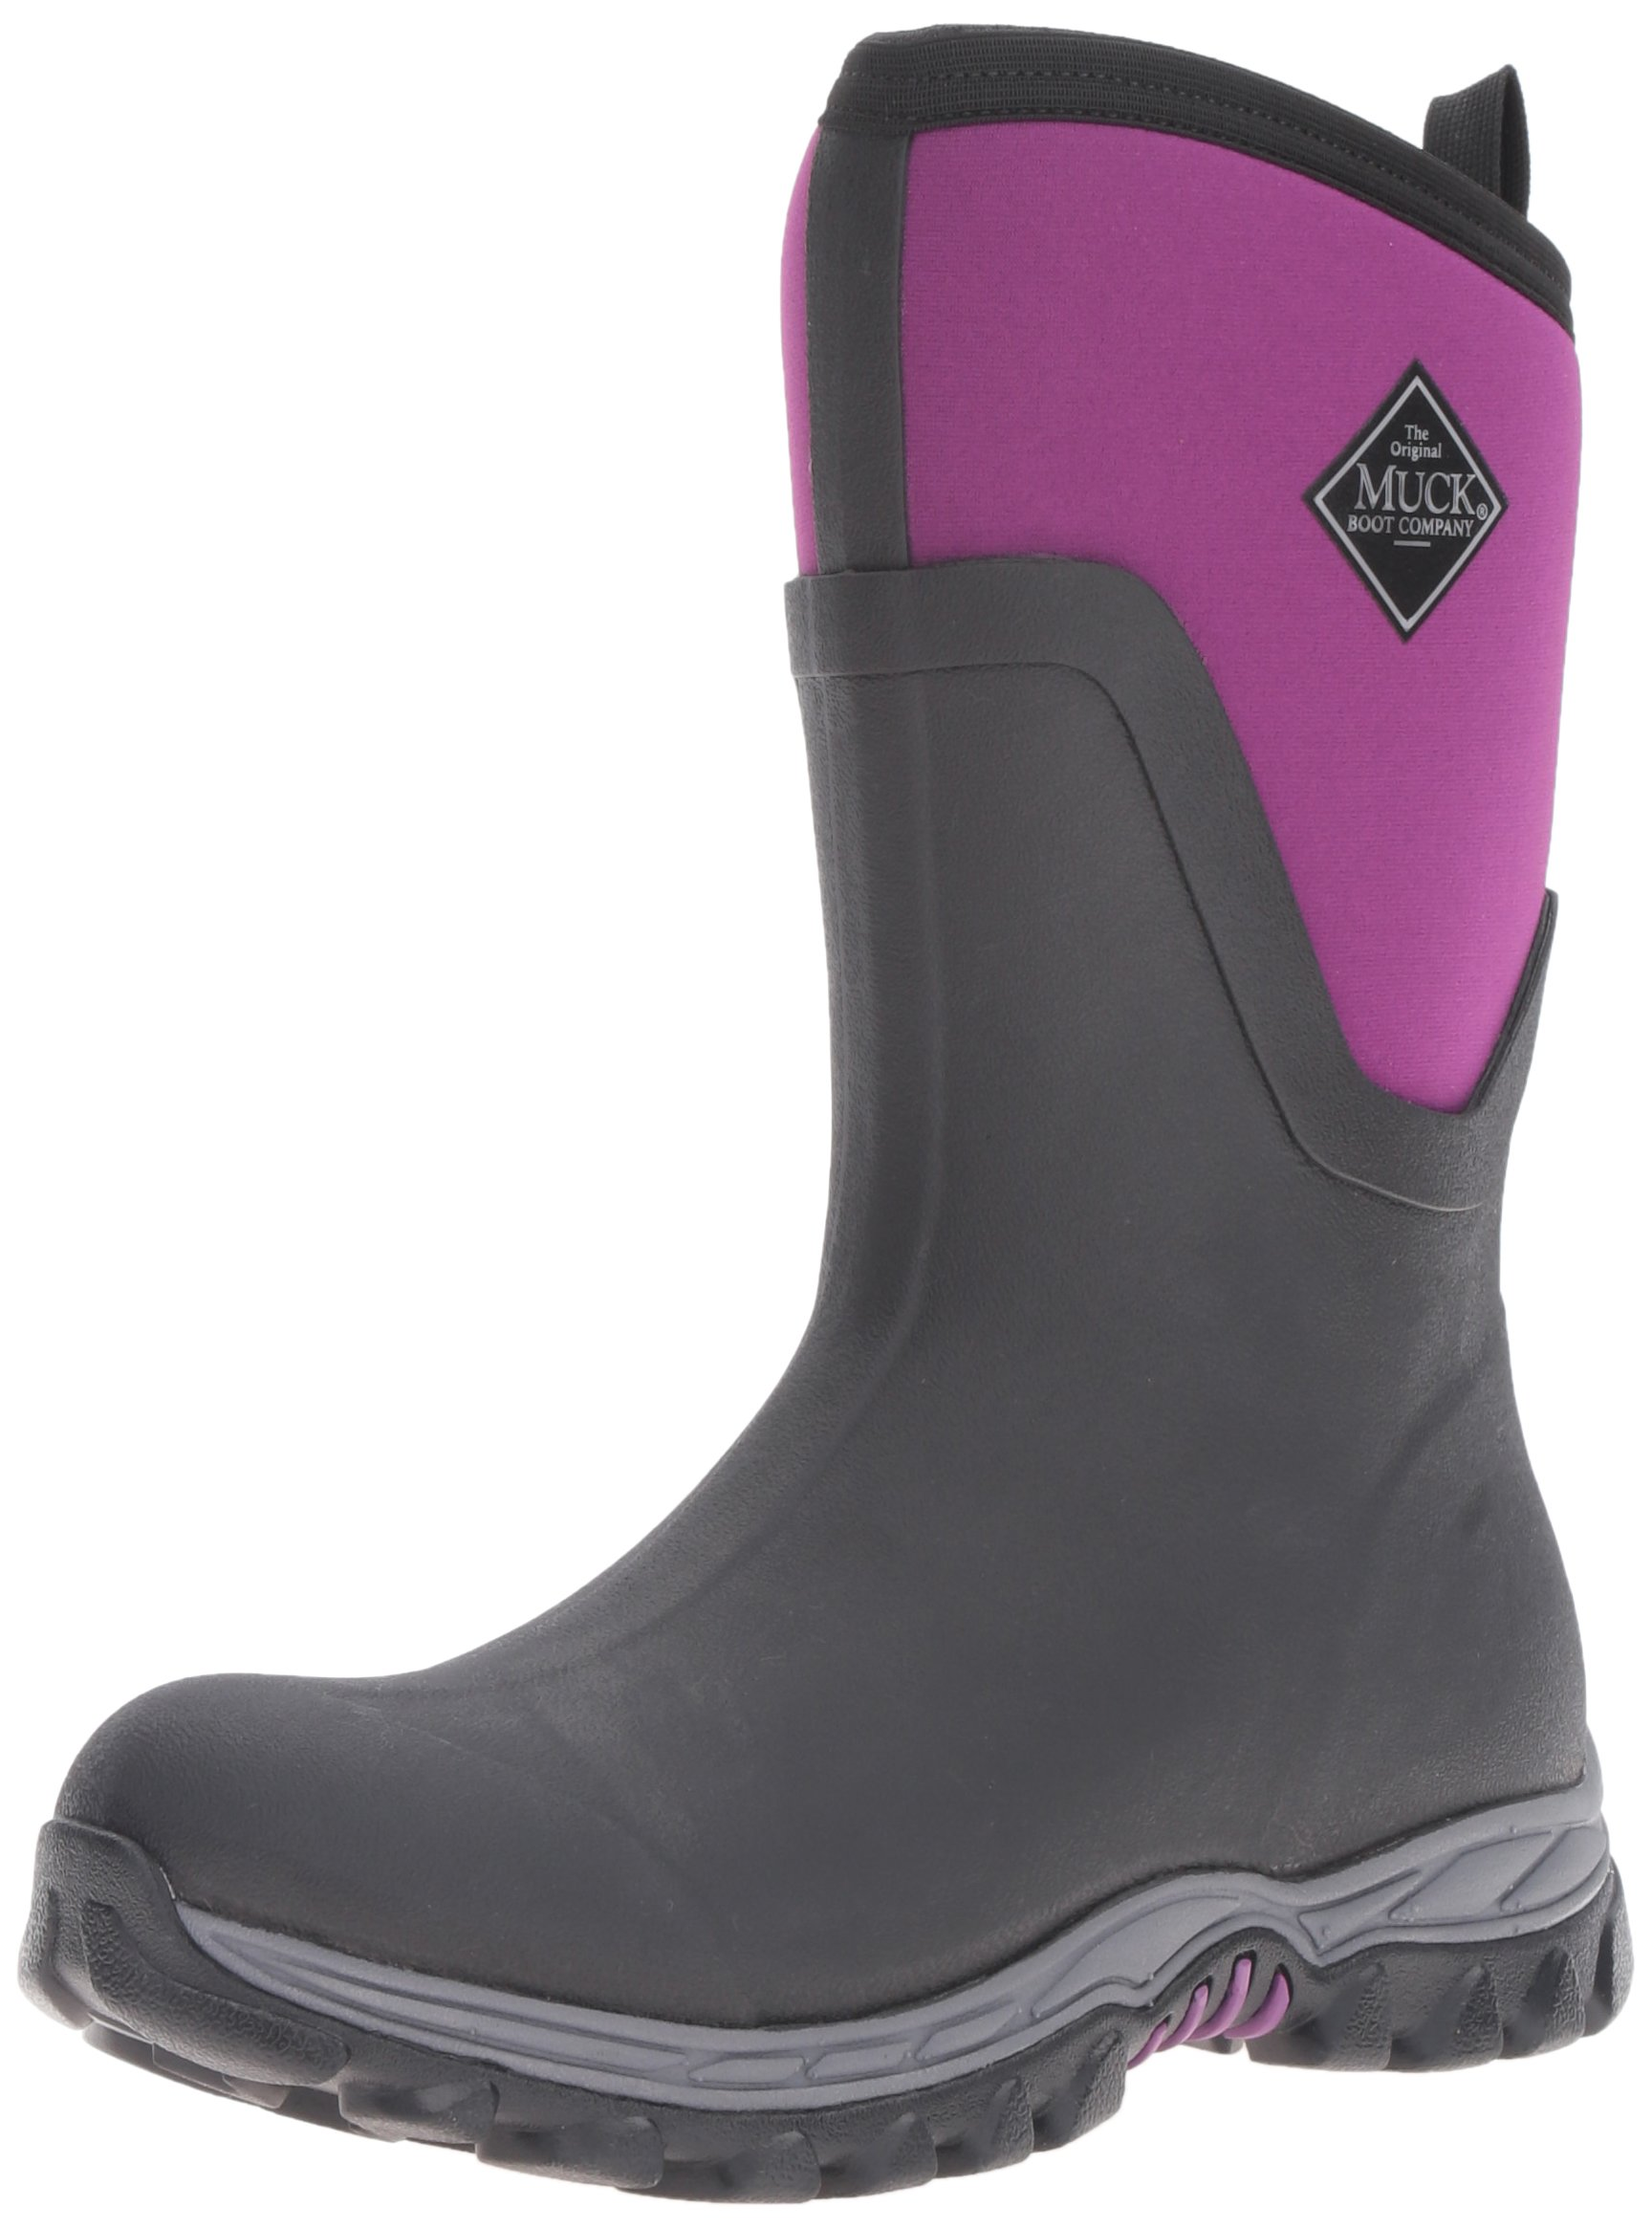 Muck Boot Women's Arctic Sport II Mid Snow Boot, Black/Phlox Purple, 9 US/9 M US